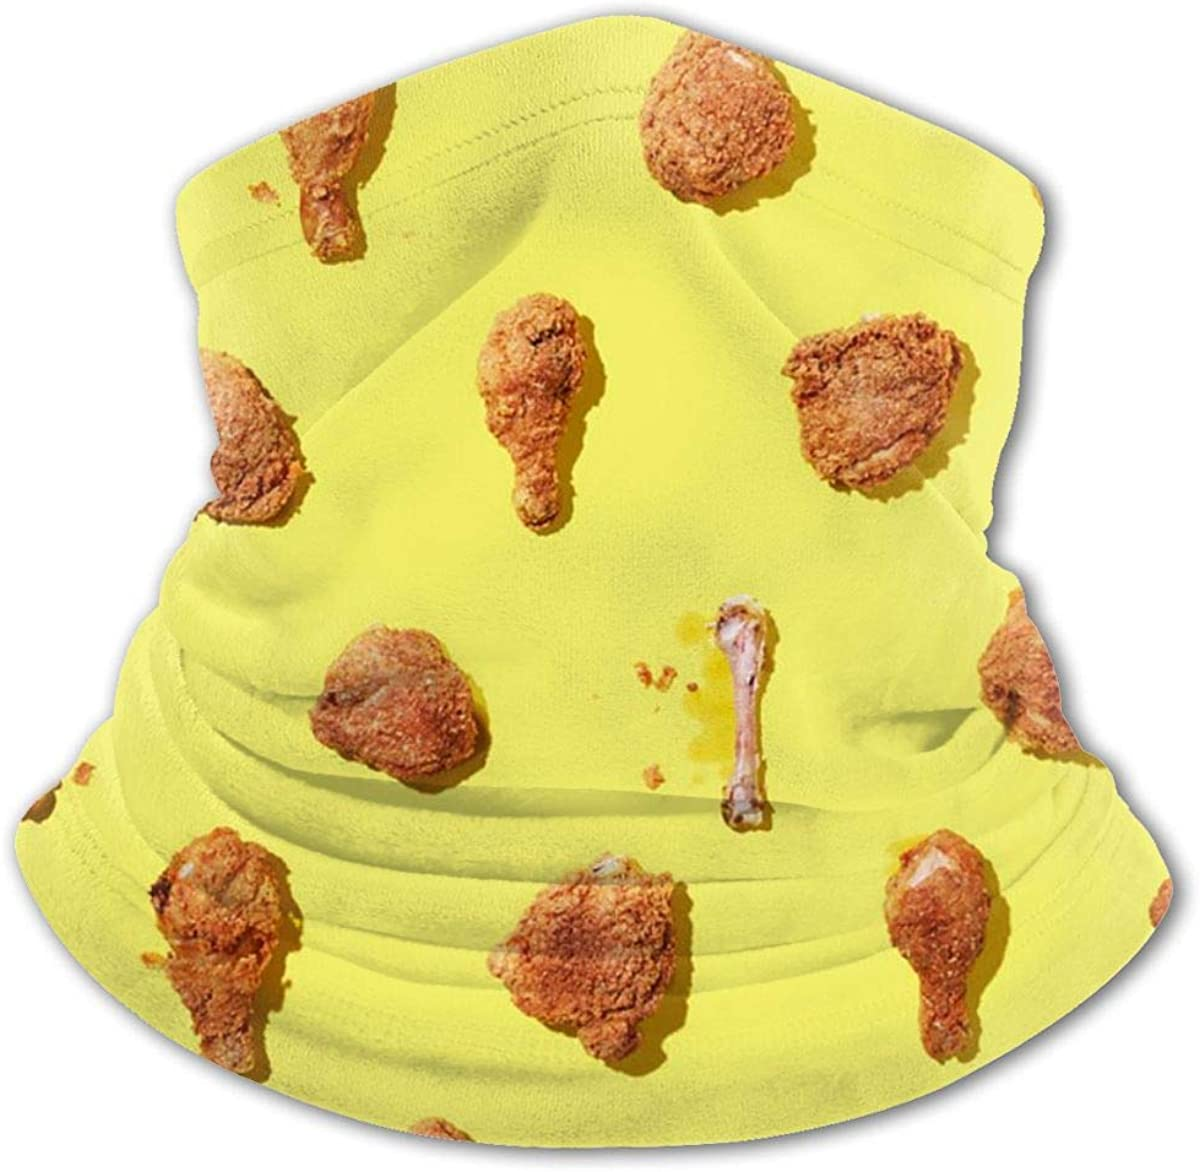 Fried Chicken Leg Headwear For Girls And Boys, Head Wrap, Neck Gaiter, Headband, Tenn Fishing Mask, Magic Scarf, Tube Mask, Face Bandana Mask For Camping Running Cycling